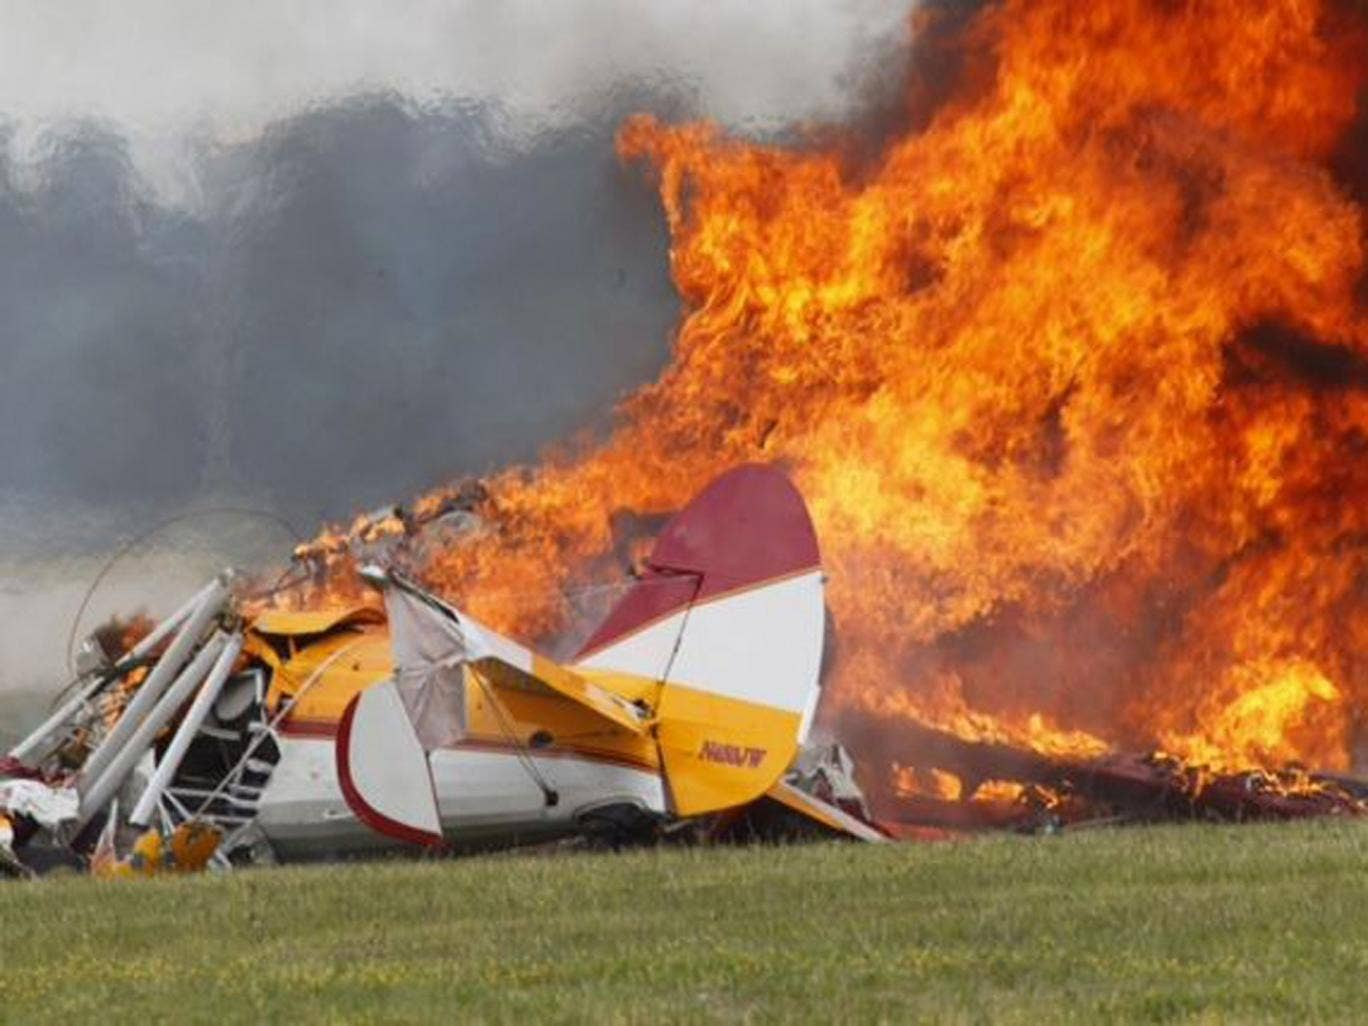 Flames erupt from a plane after it crashed at the Vectren Air Show at the airport in Dayton, Ohio